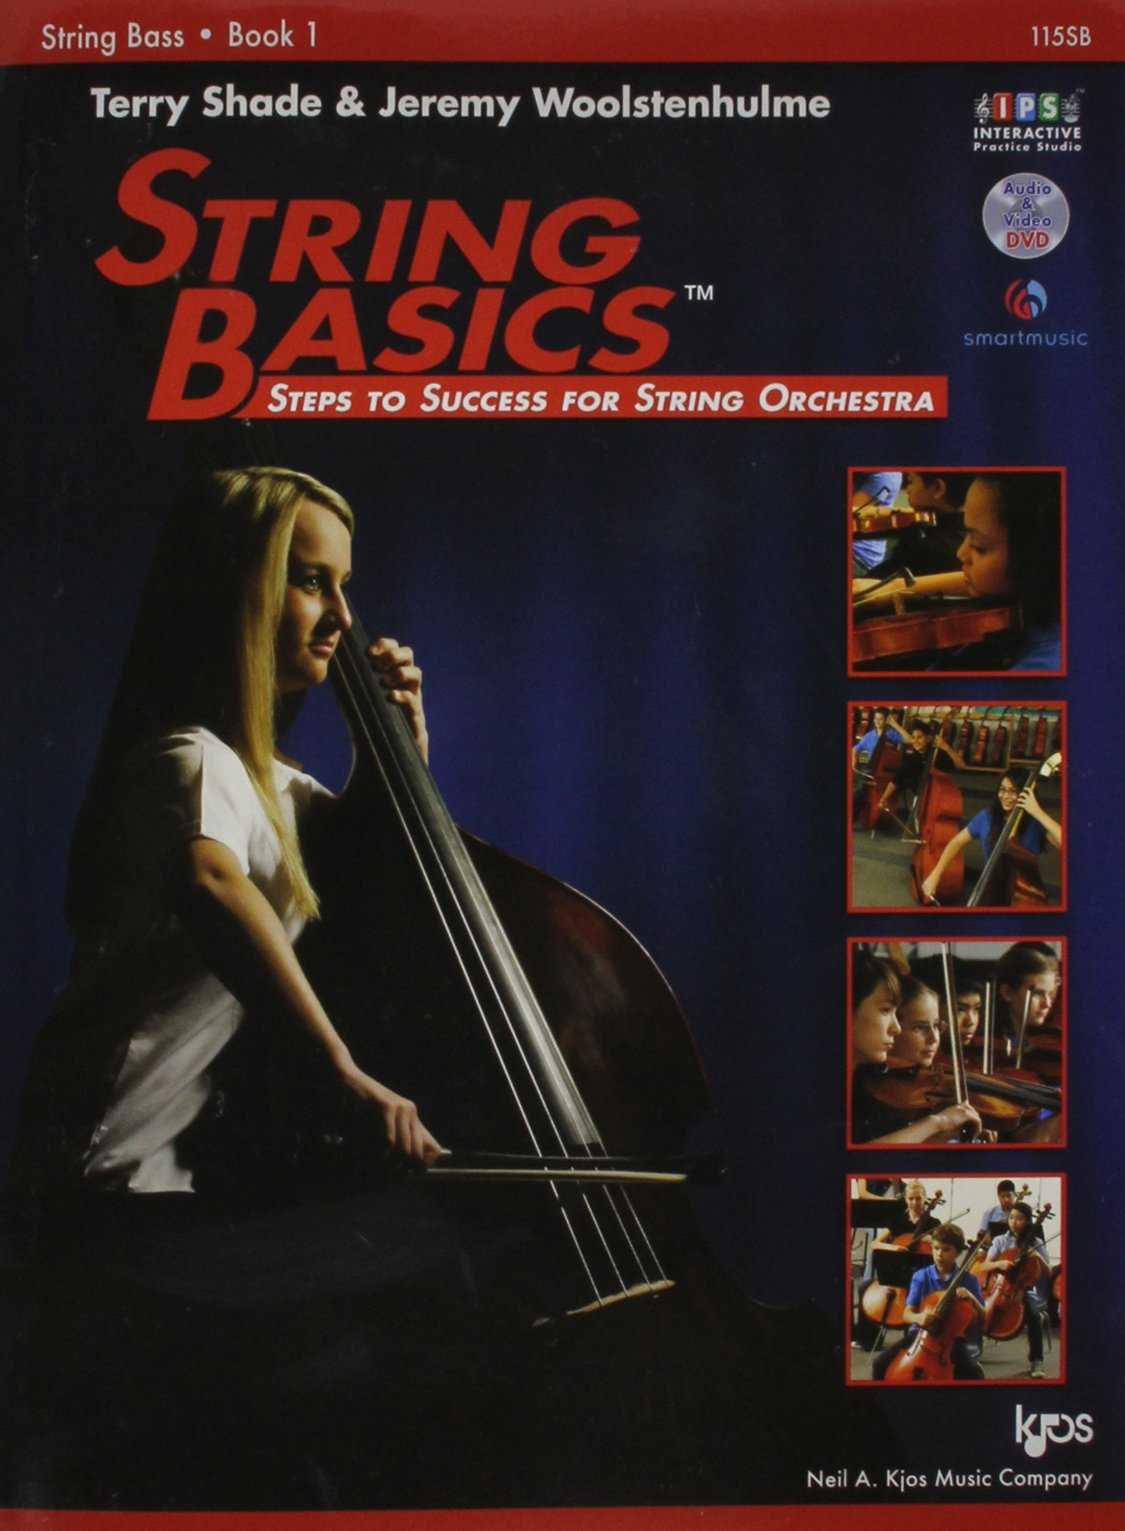 Terry Shade/Jeremy Woolstenhulme: String Basics - Book 1: String Bass Paperback – May 17 2011 Kjos (Neil A.) Music Co U.S. 084973486X 115SB